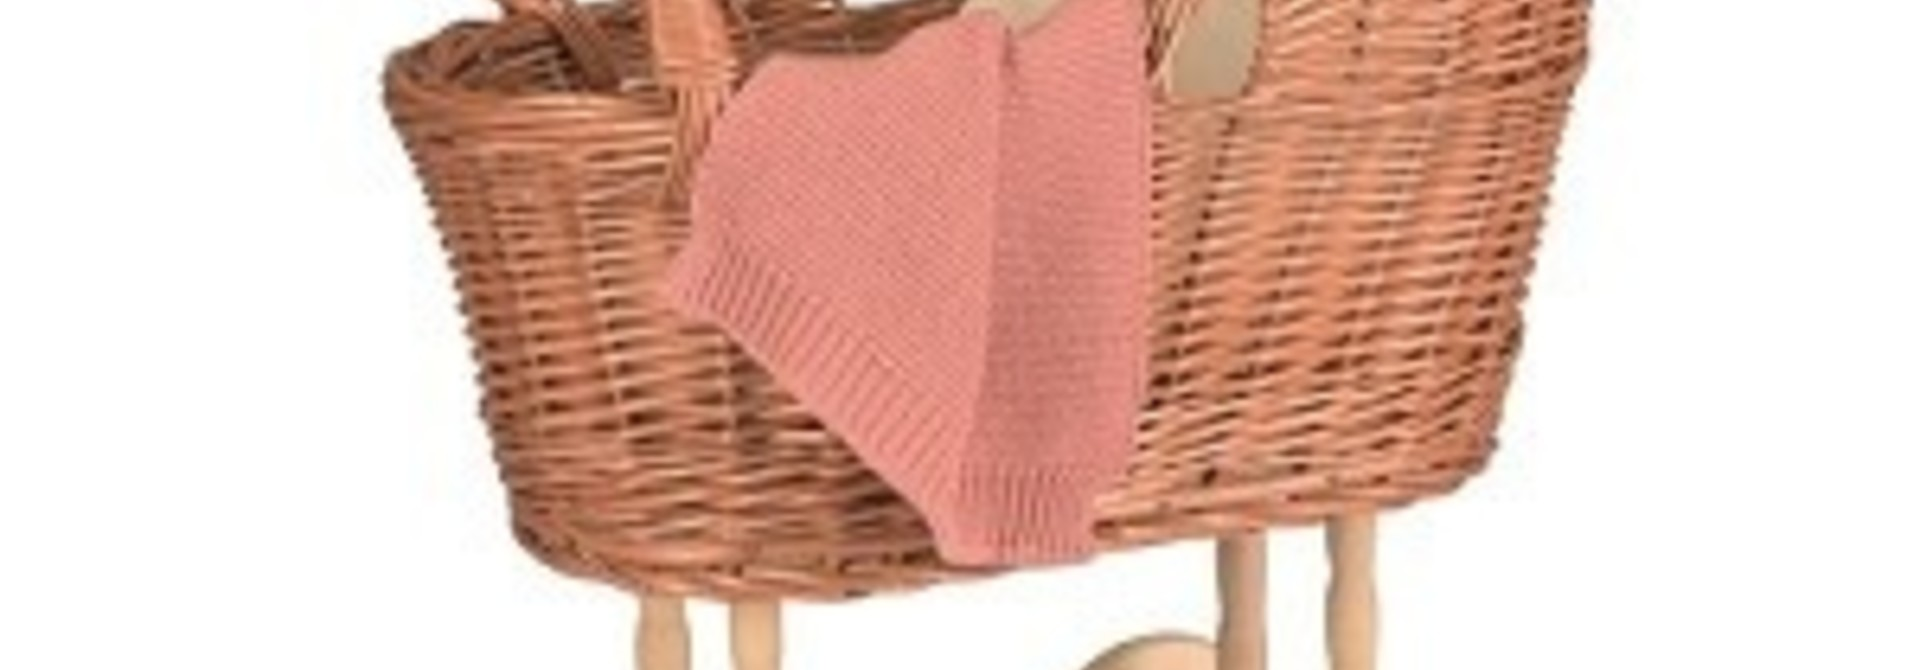 Pram with knitted blanket